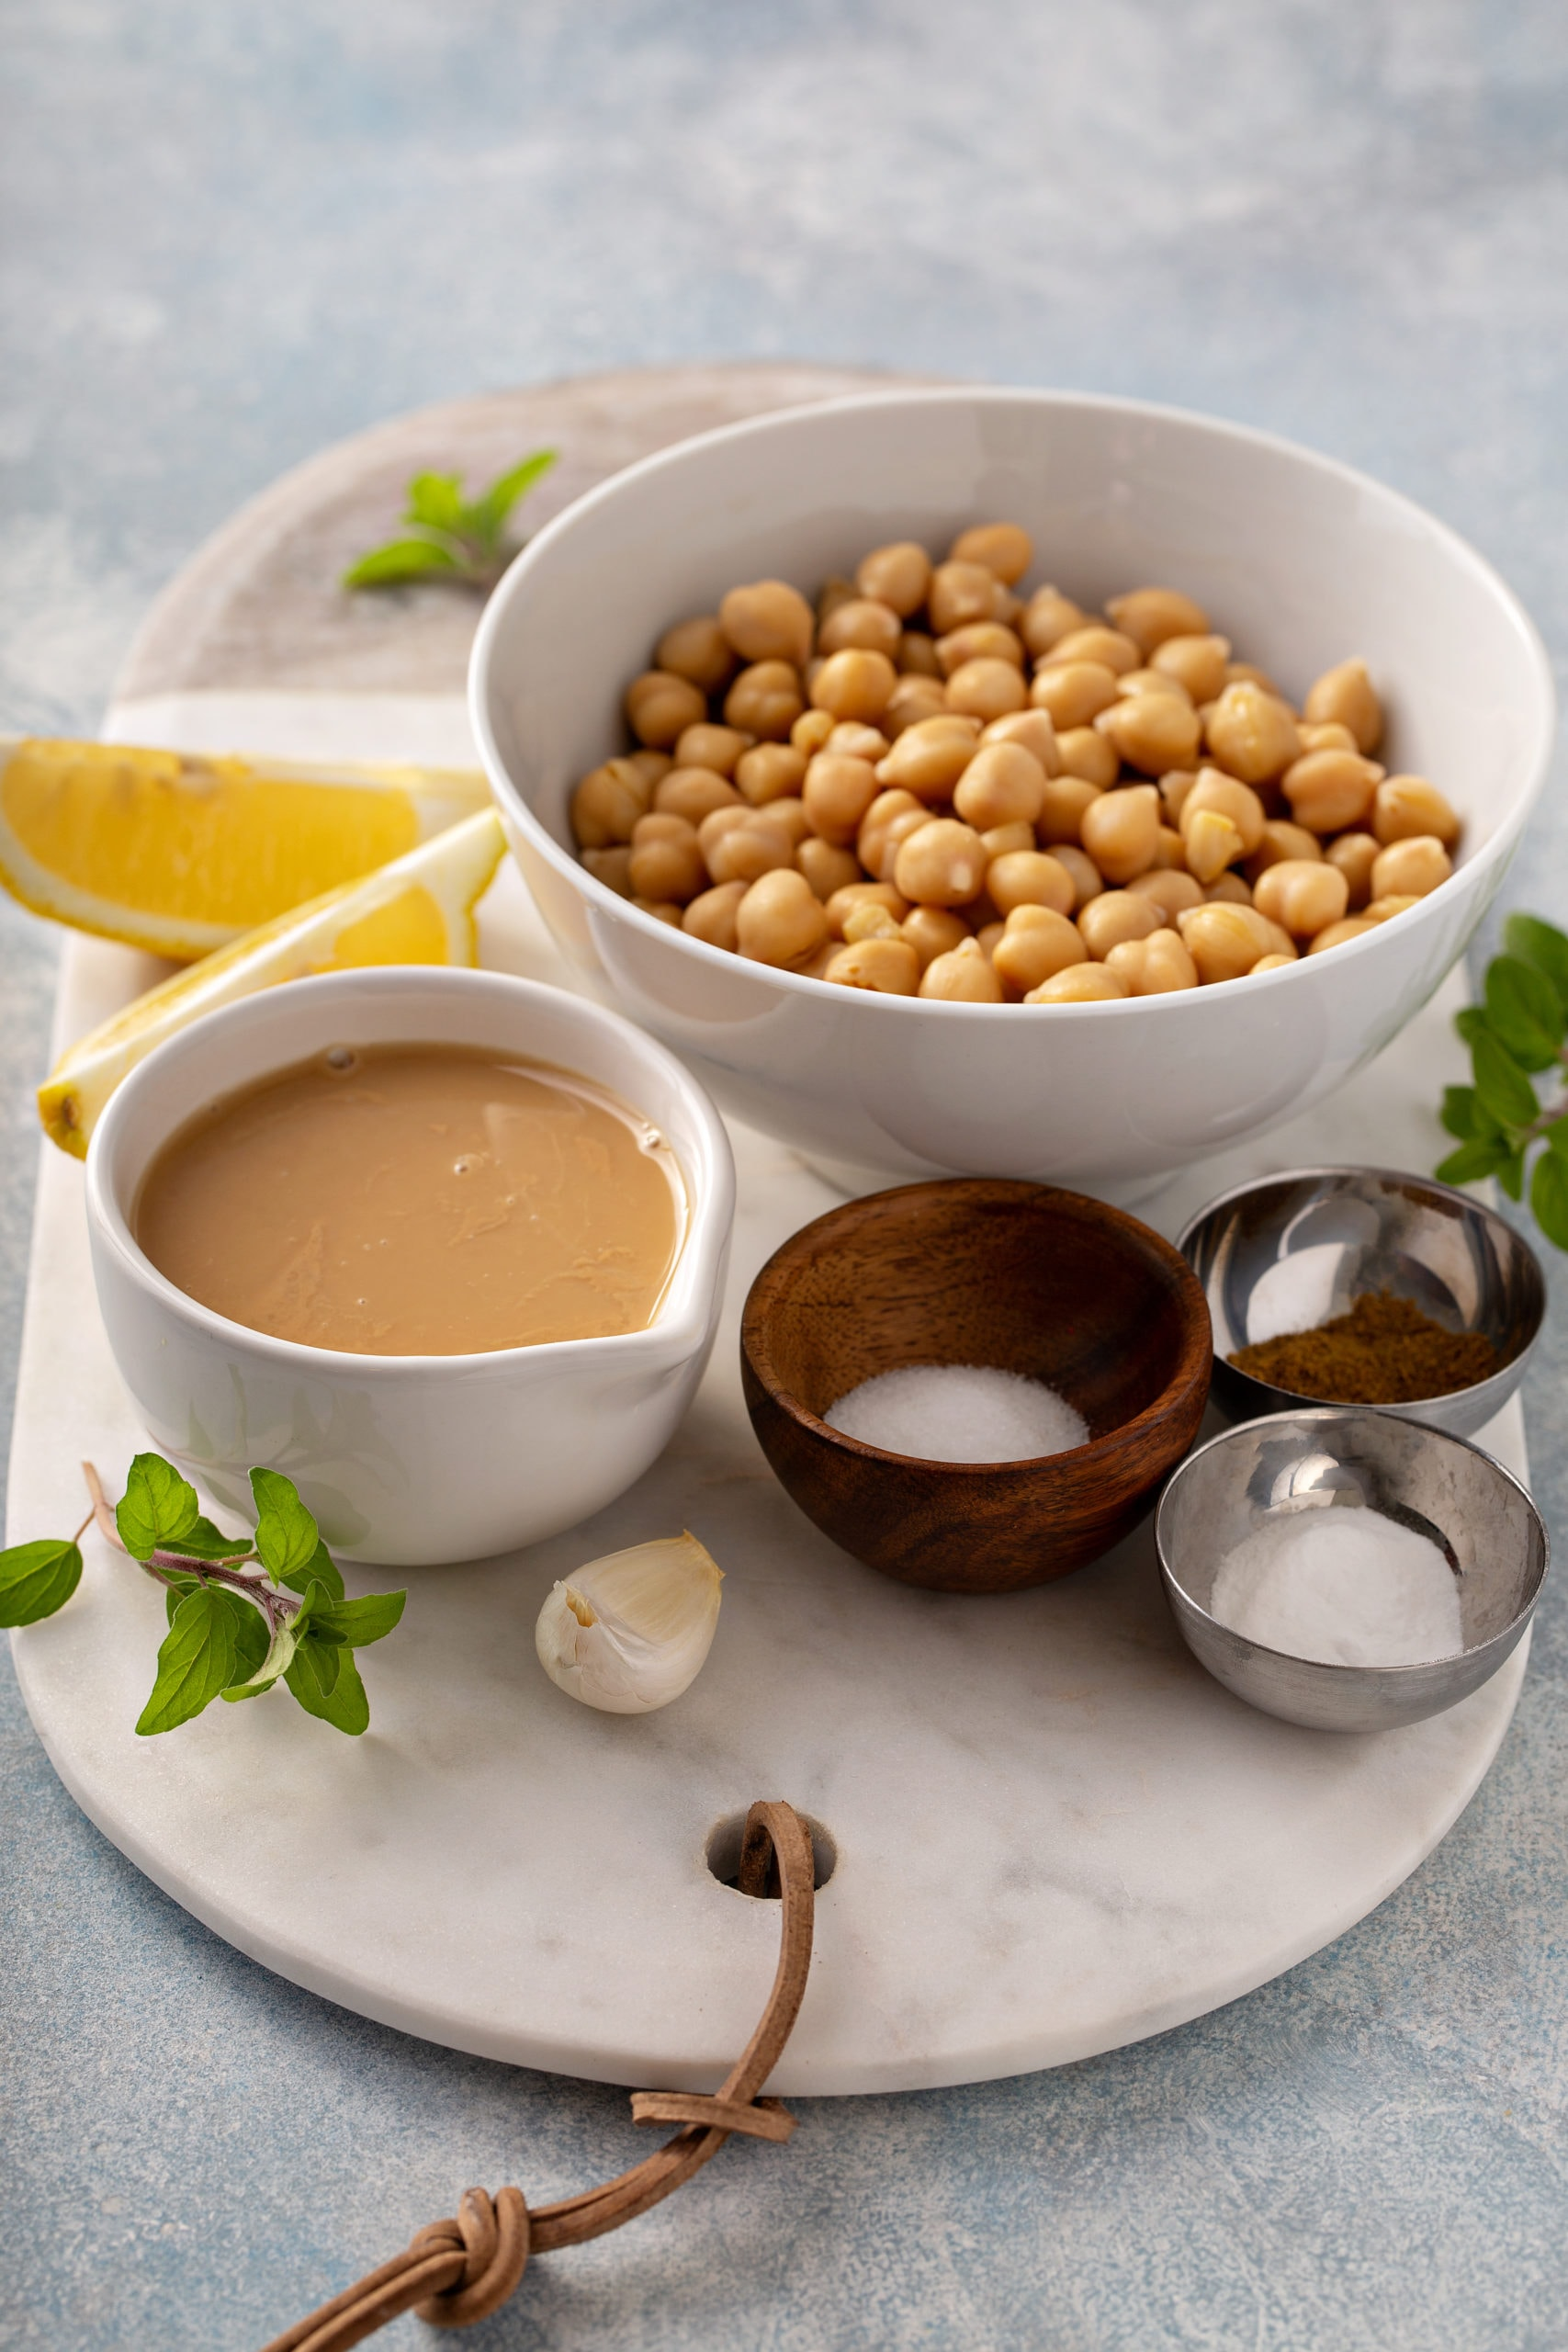 A large bowl of chick peas, smaller bowls of sea salt, cumin and baking soda with a cup of Tahini and a clove of garlic and lemon wedges.